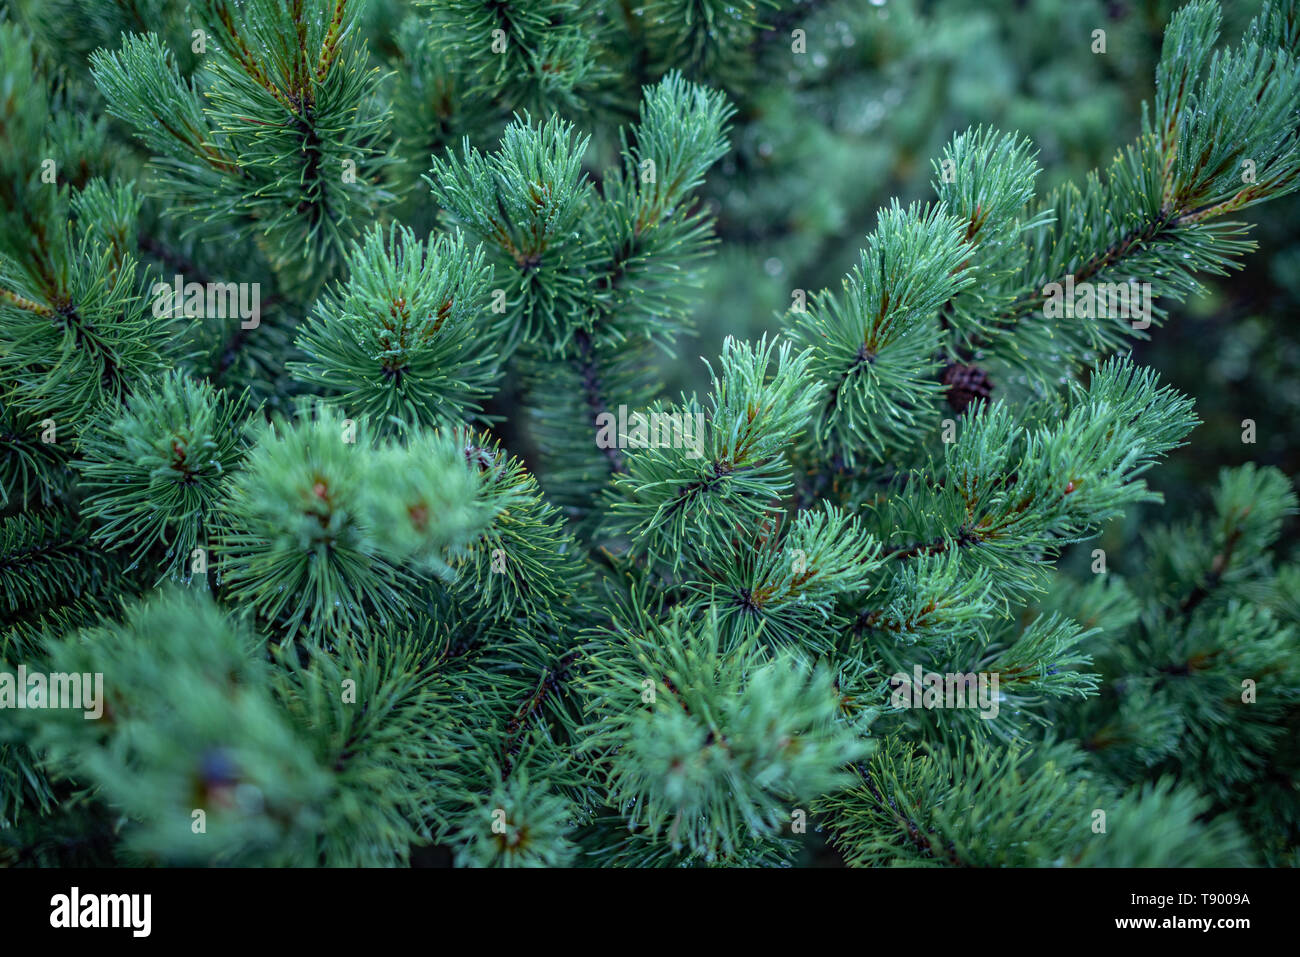 The branches of spruce or pine close-up. - Stock Image